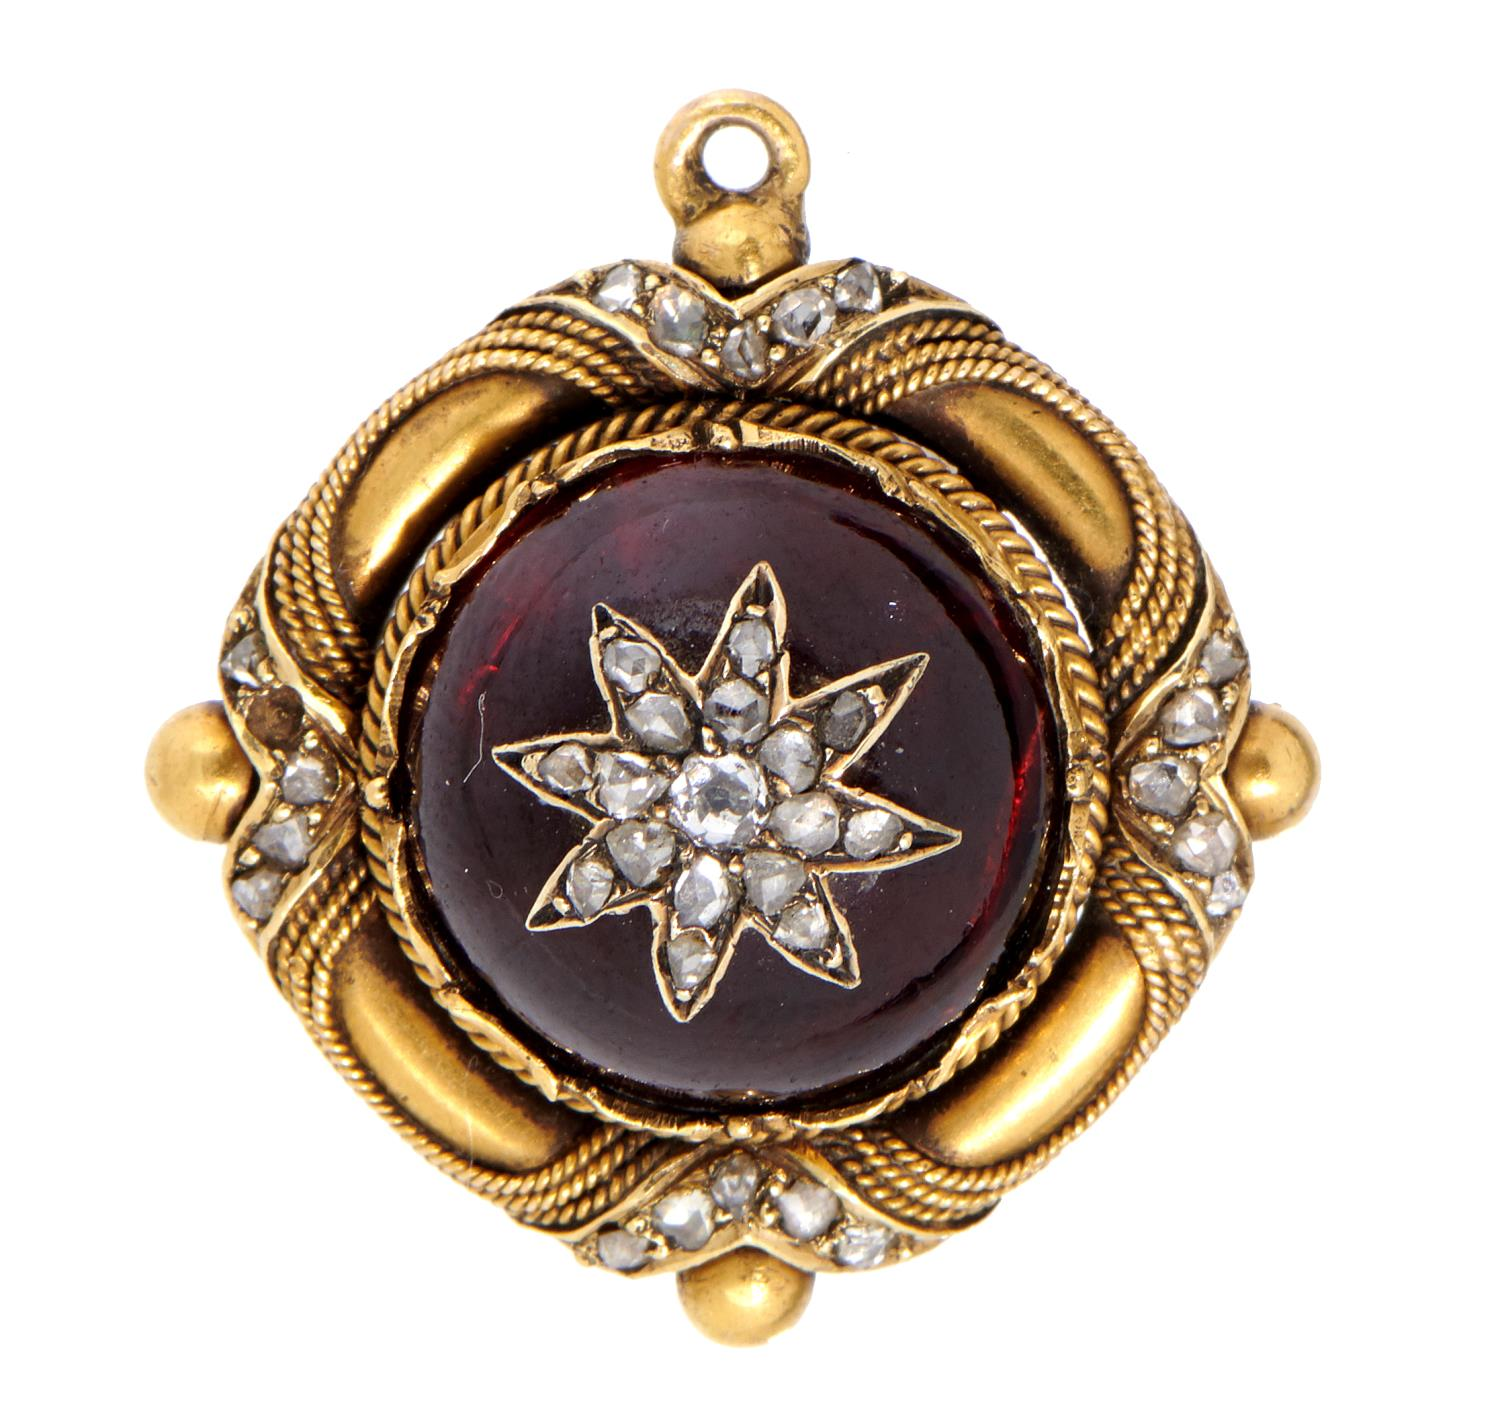 Lot 18 - A VICTORIAN DIAMOND, FOILED GARNET AND GOLD BROOCH 2cm diam, adapted from another article, 8g Good